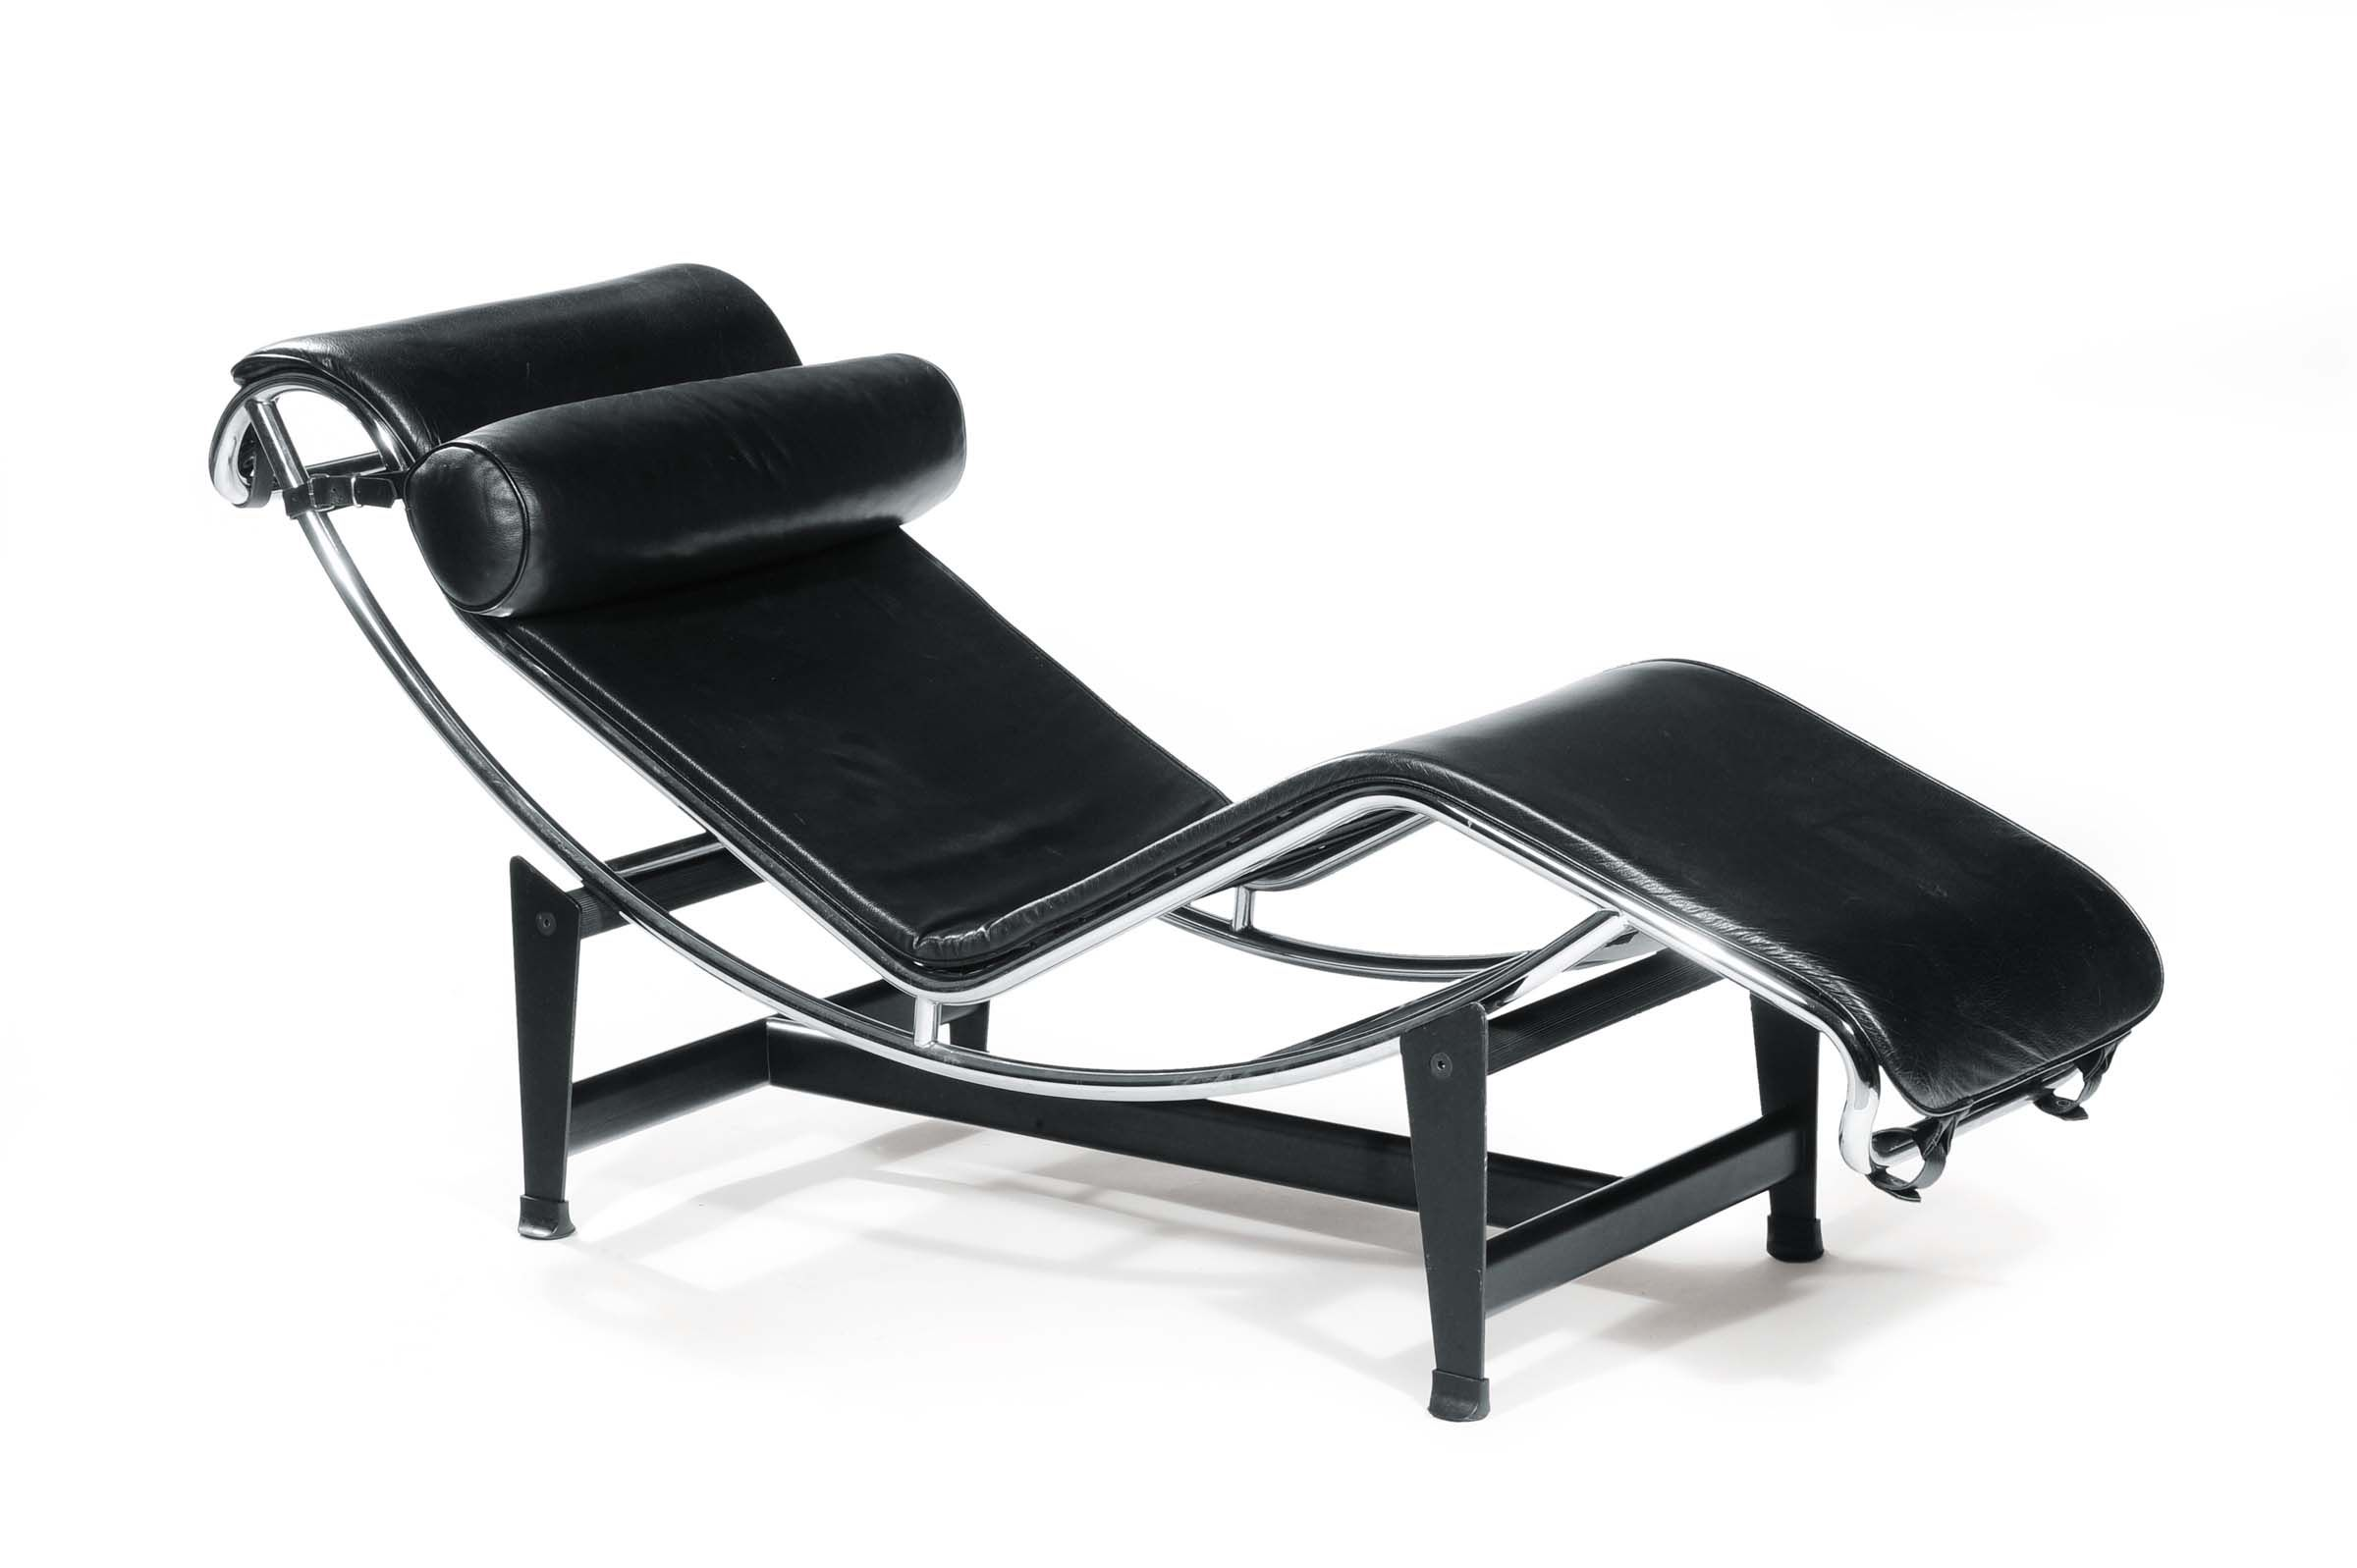 Le Corbusier - Chaise longue LC4 designed in 1928 | Arq | Pinterest ...